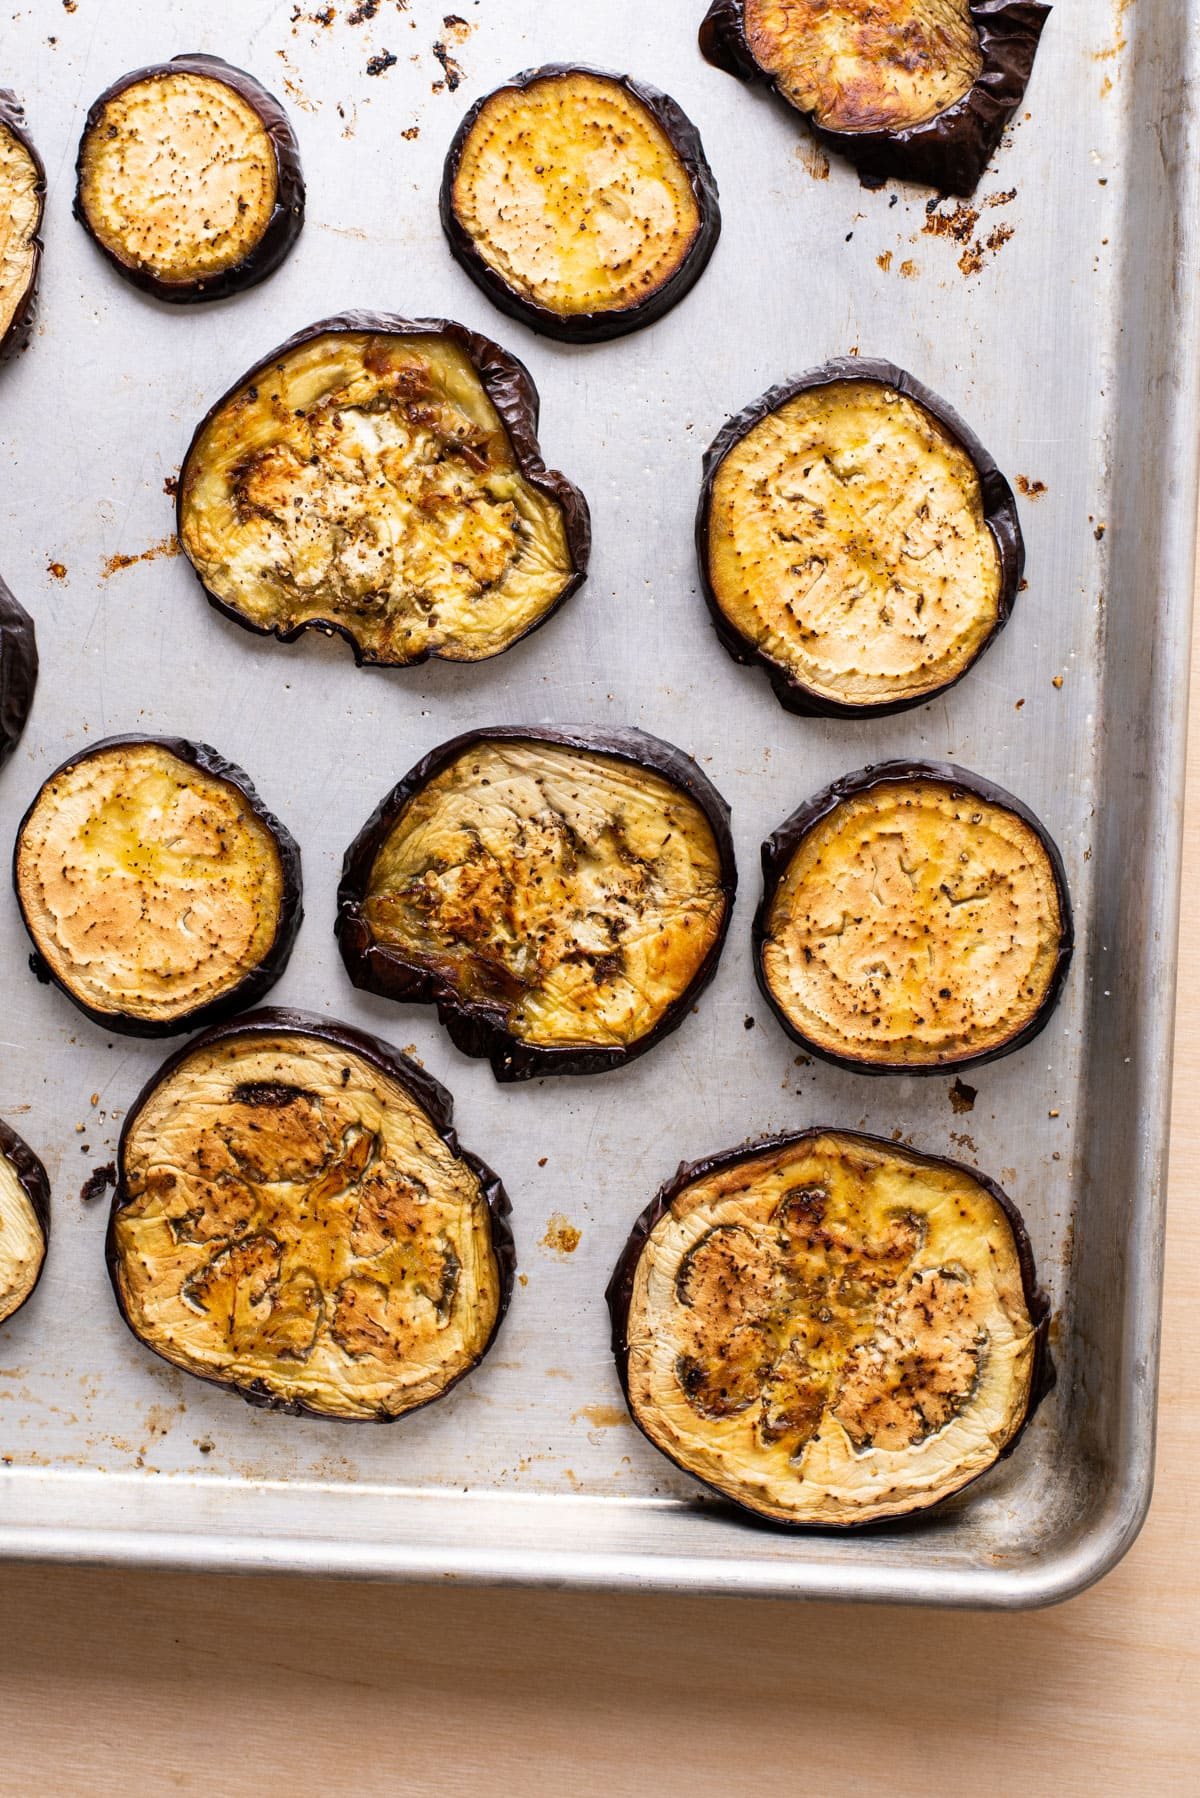 Roasted eggplant rounds on a baking sheet.